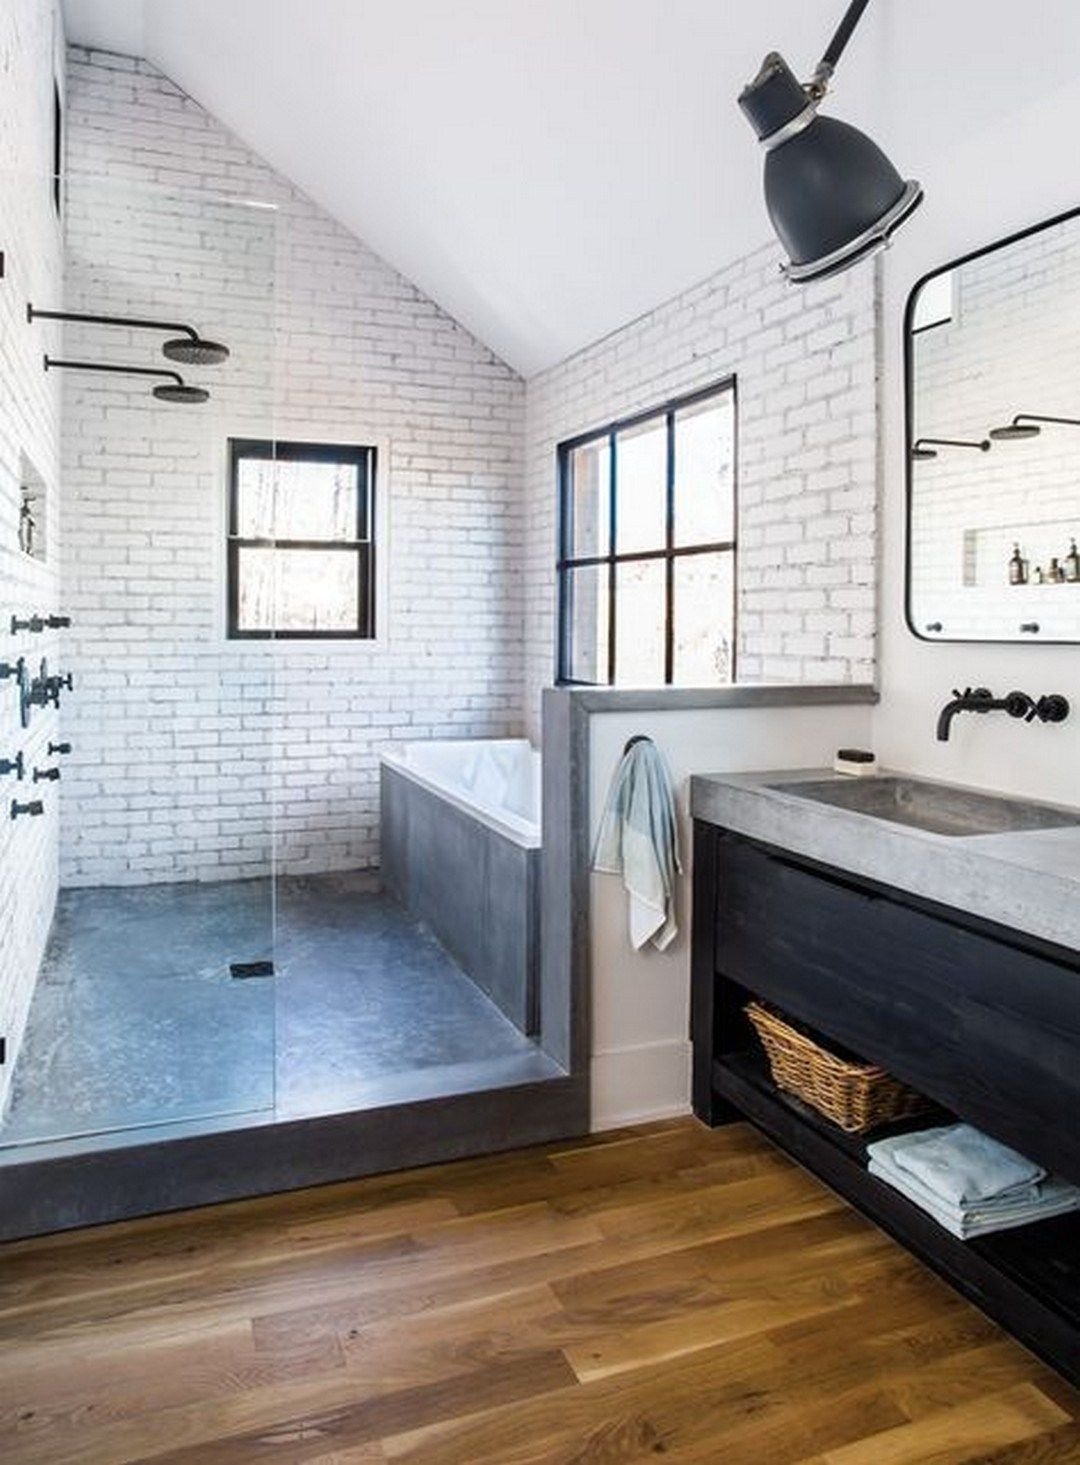 Genial Dachausbau Ideen Dekoration Von Beautiful Urban E Master Bathroom Remodel (45)